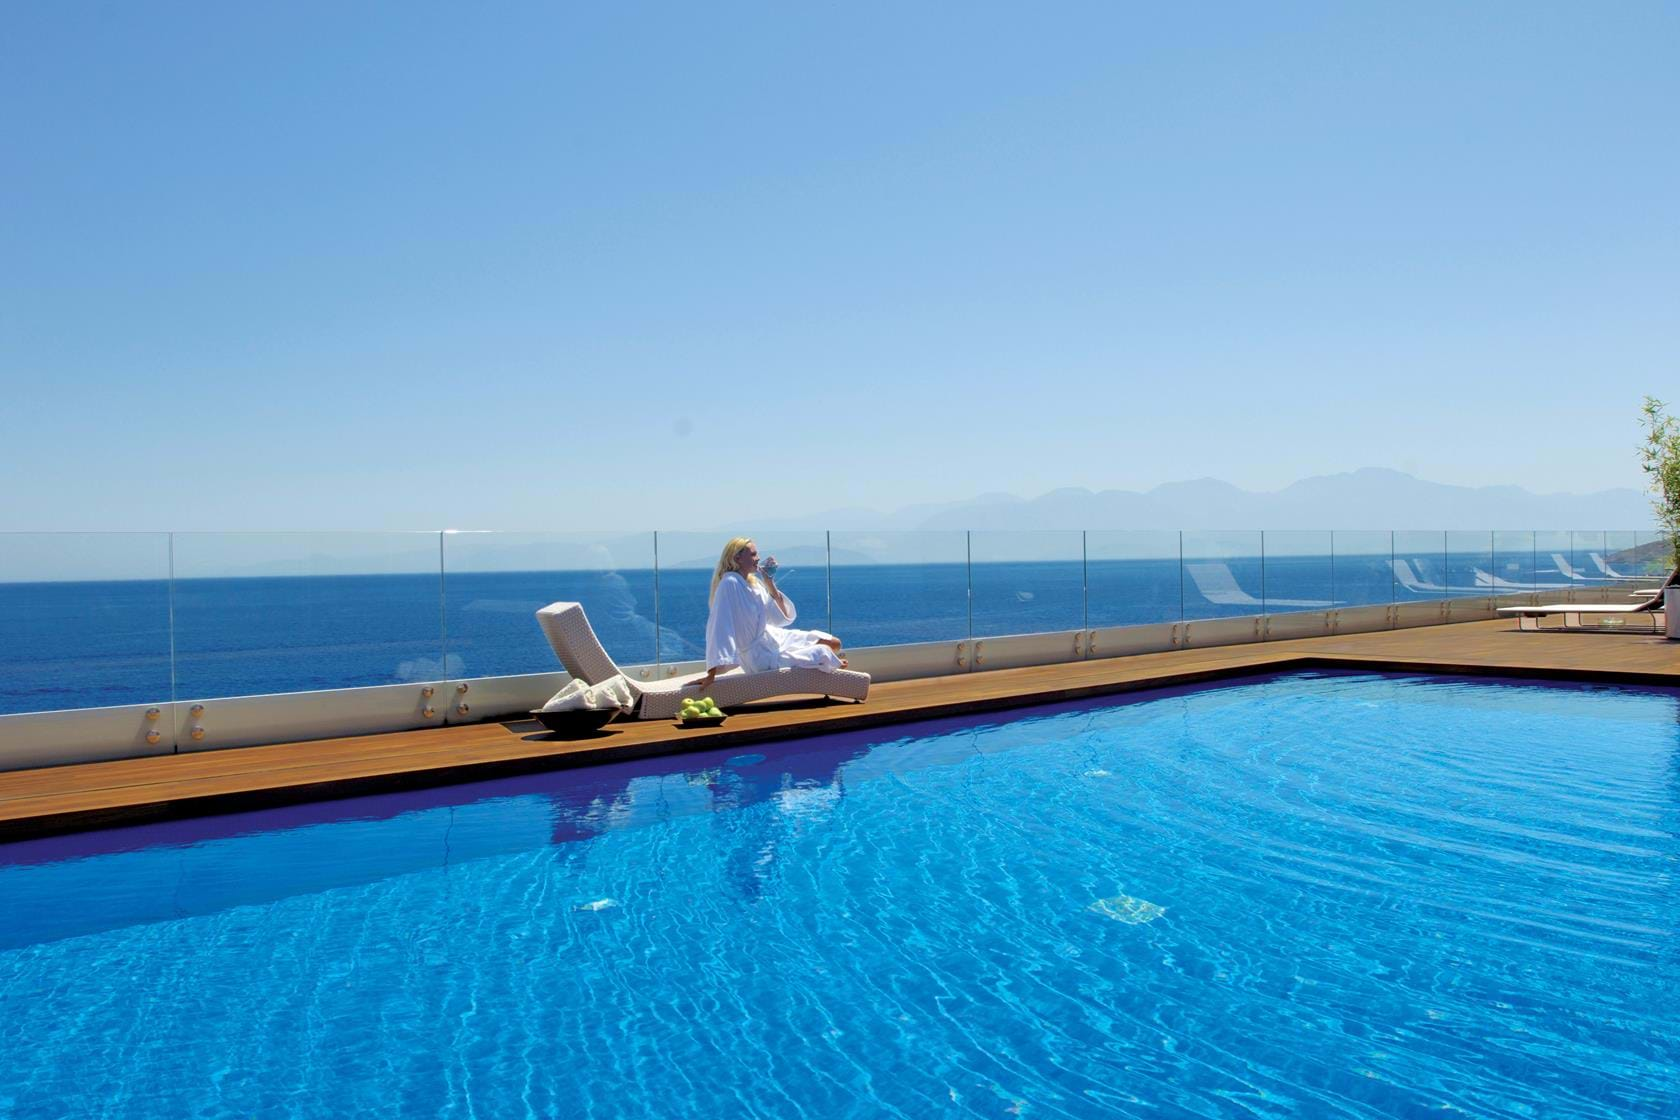 Like No Other Resort On Earth The Endless Blue Of Mediterranean Shimmering Your Crystal Clear Private Pool